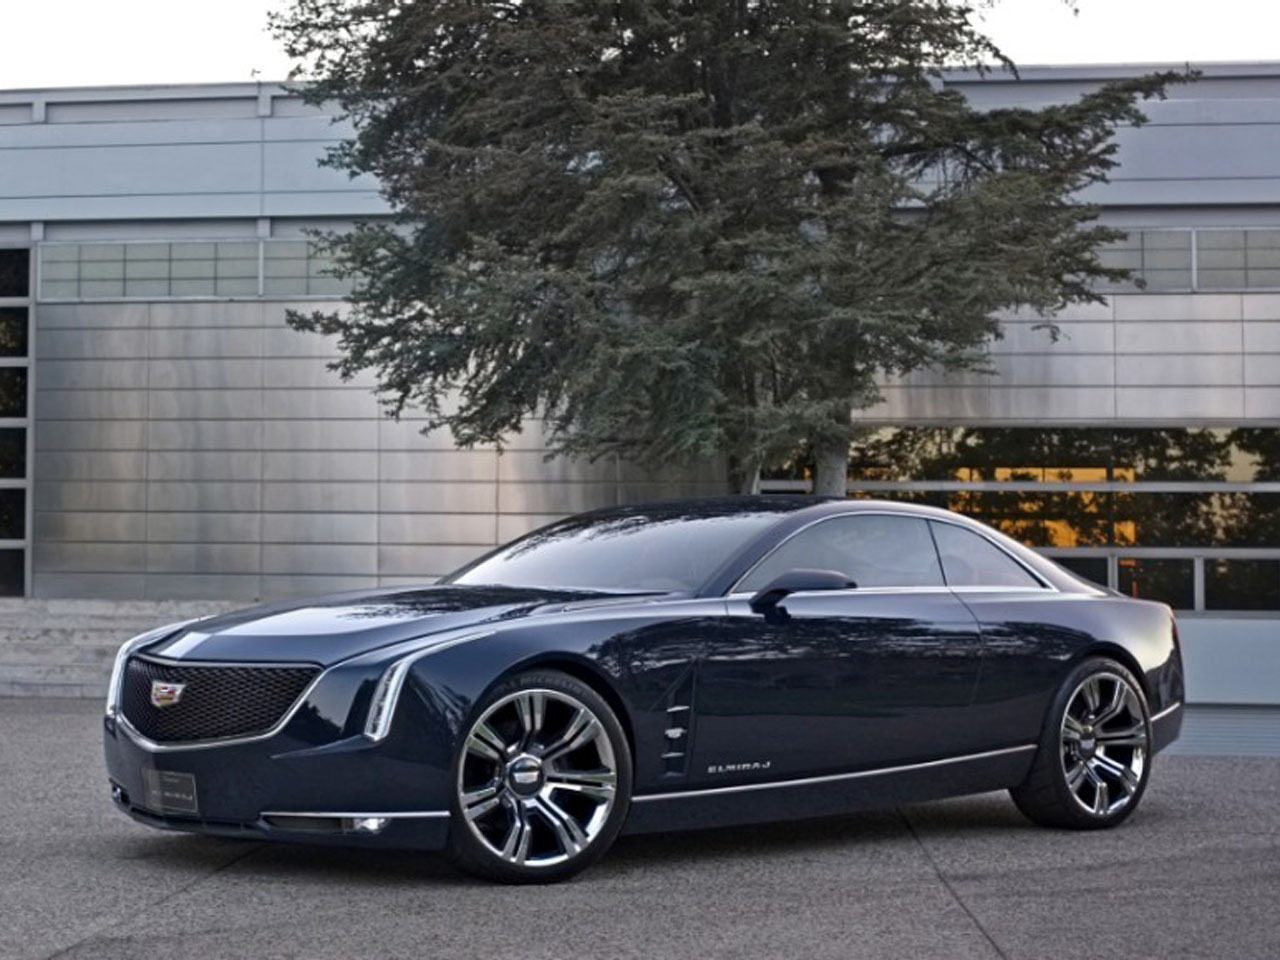 Cadillac Shows Off Two Door Coupe Concept Car